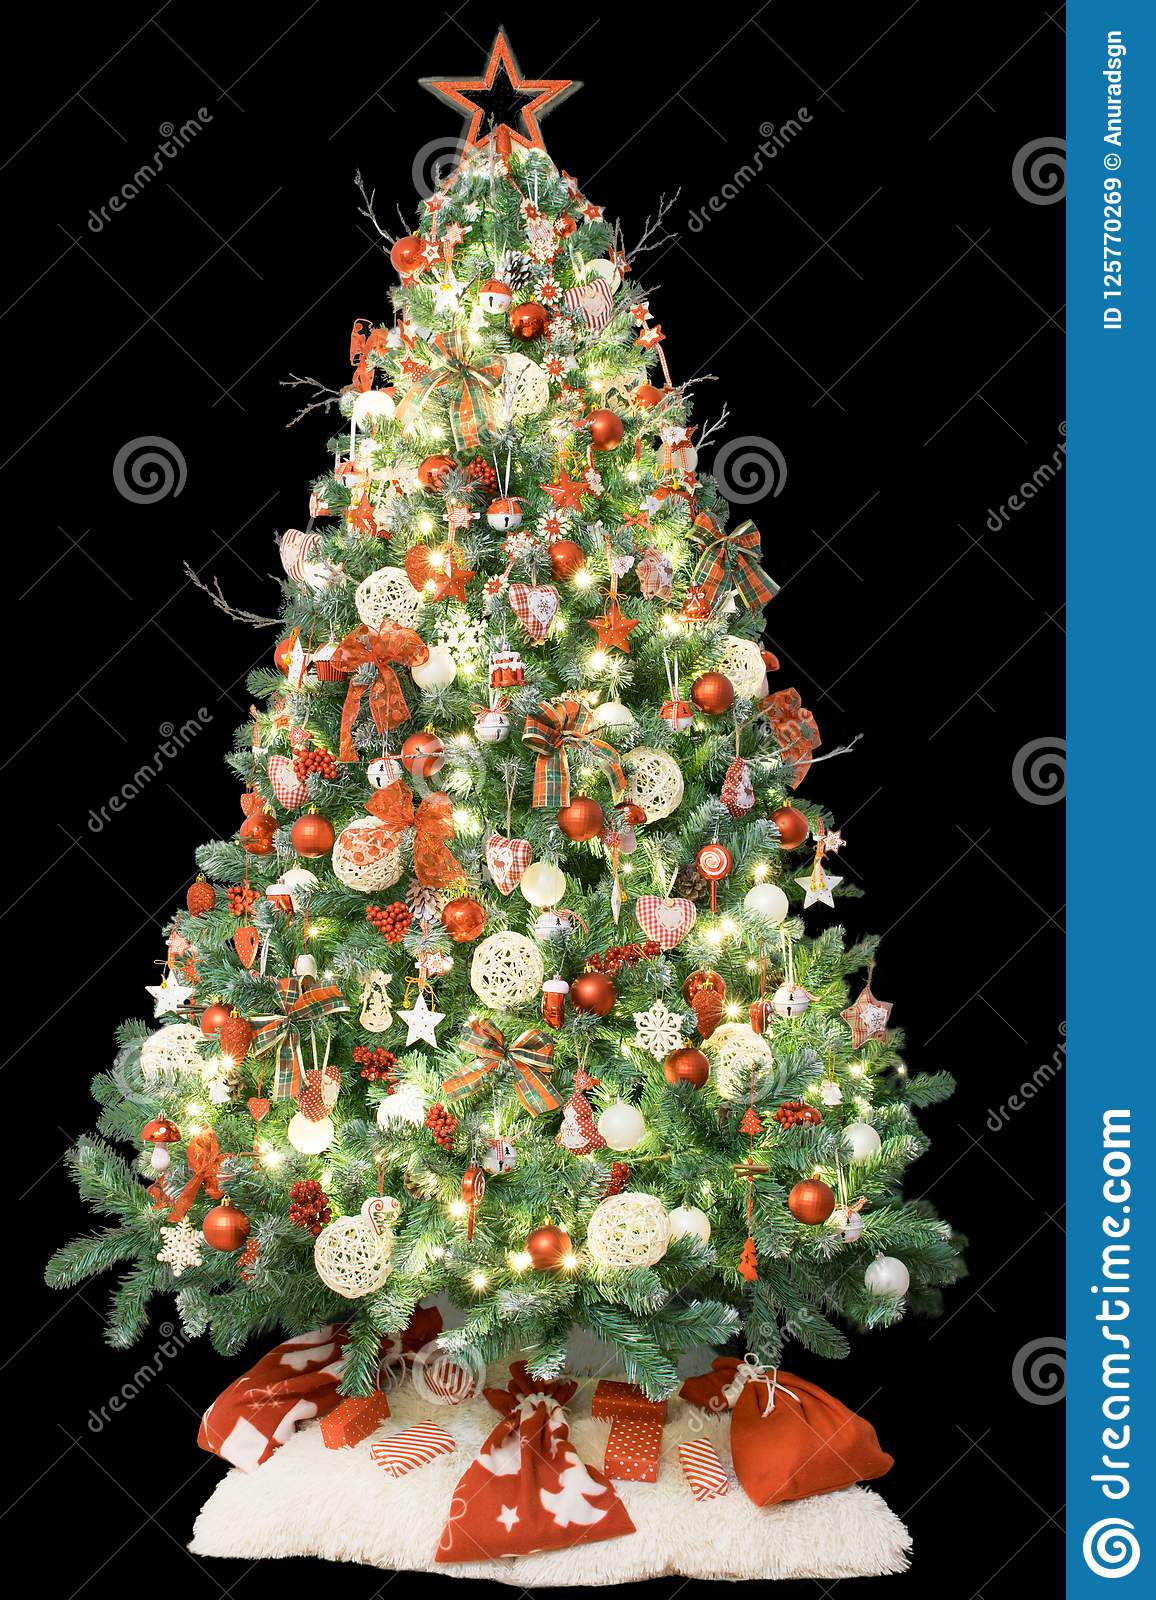 modern christmas tree decorated with vintage ornaments lights and red white gifts isolated